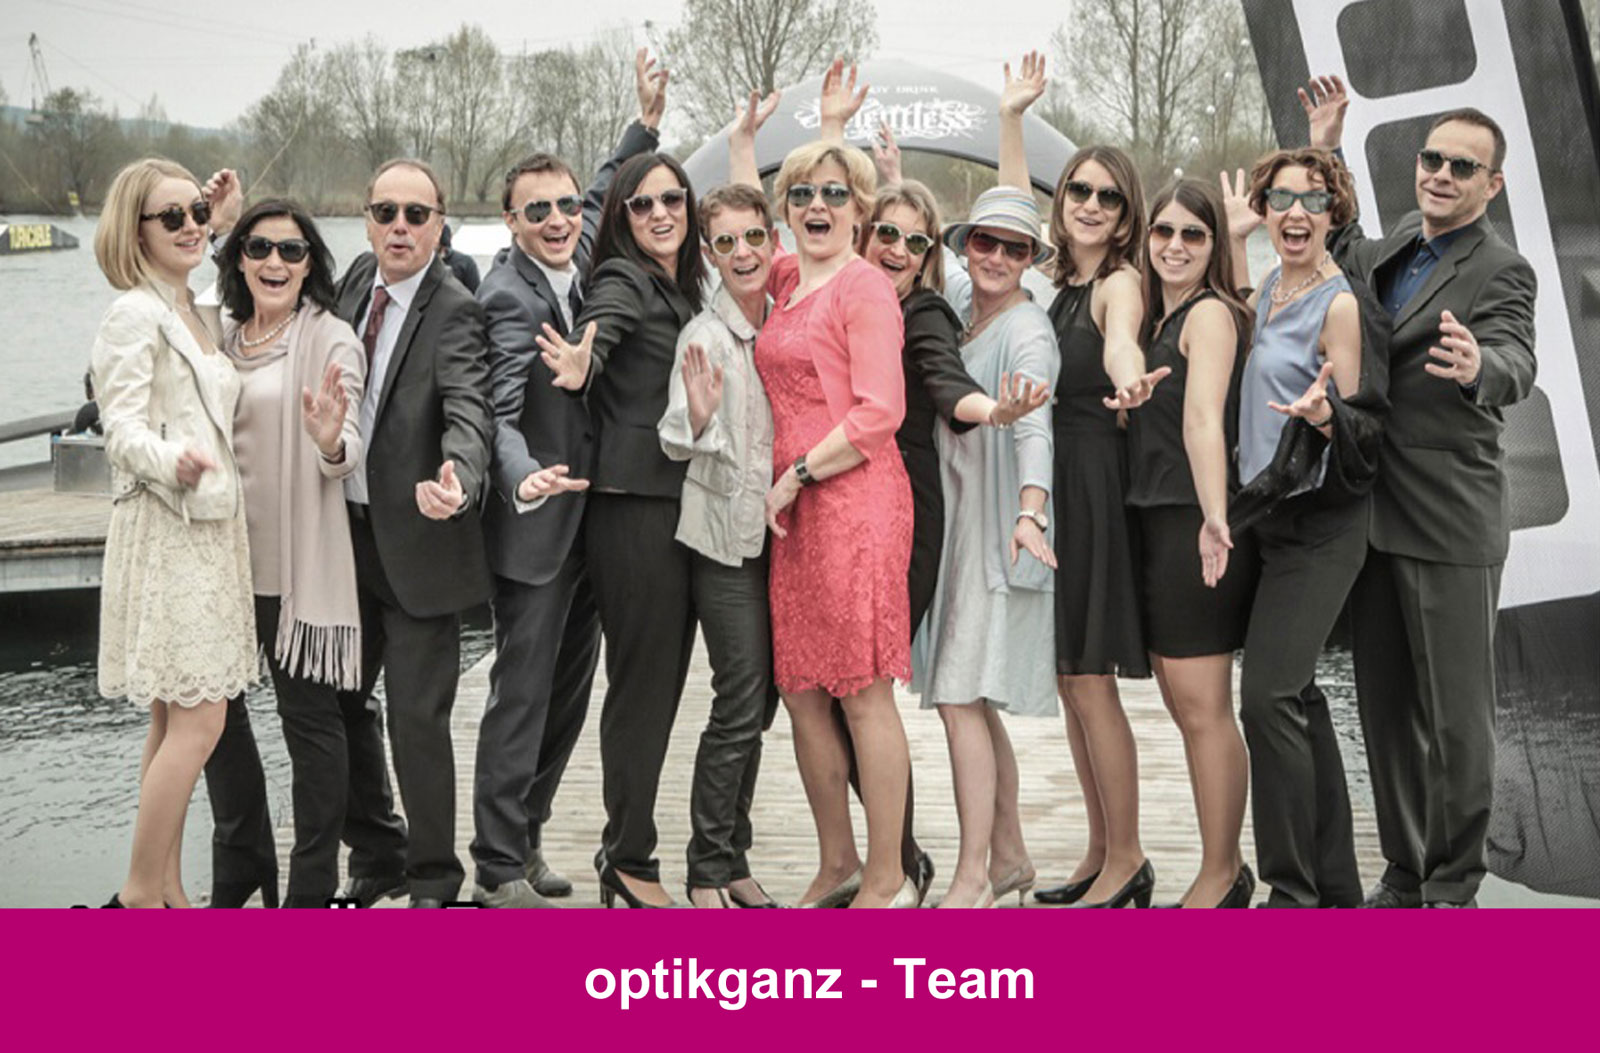 optikganz team